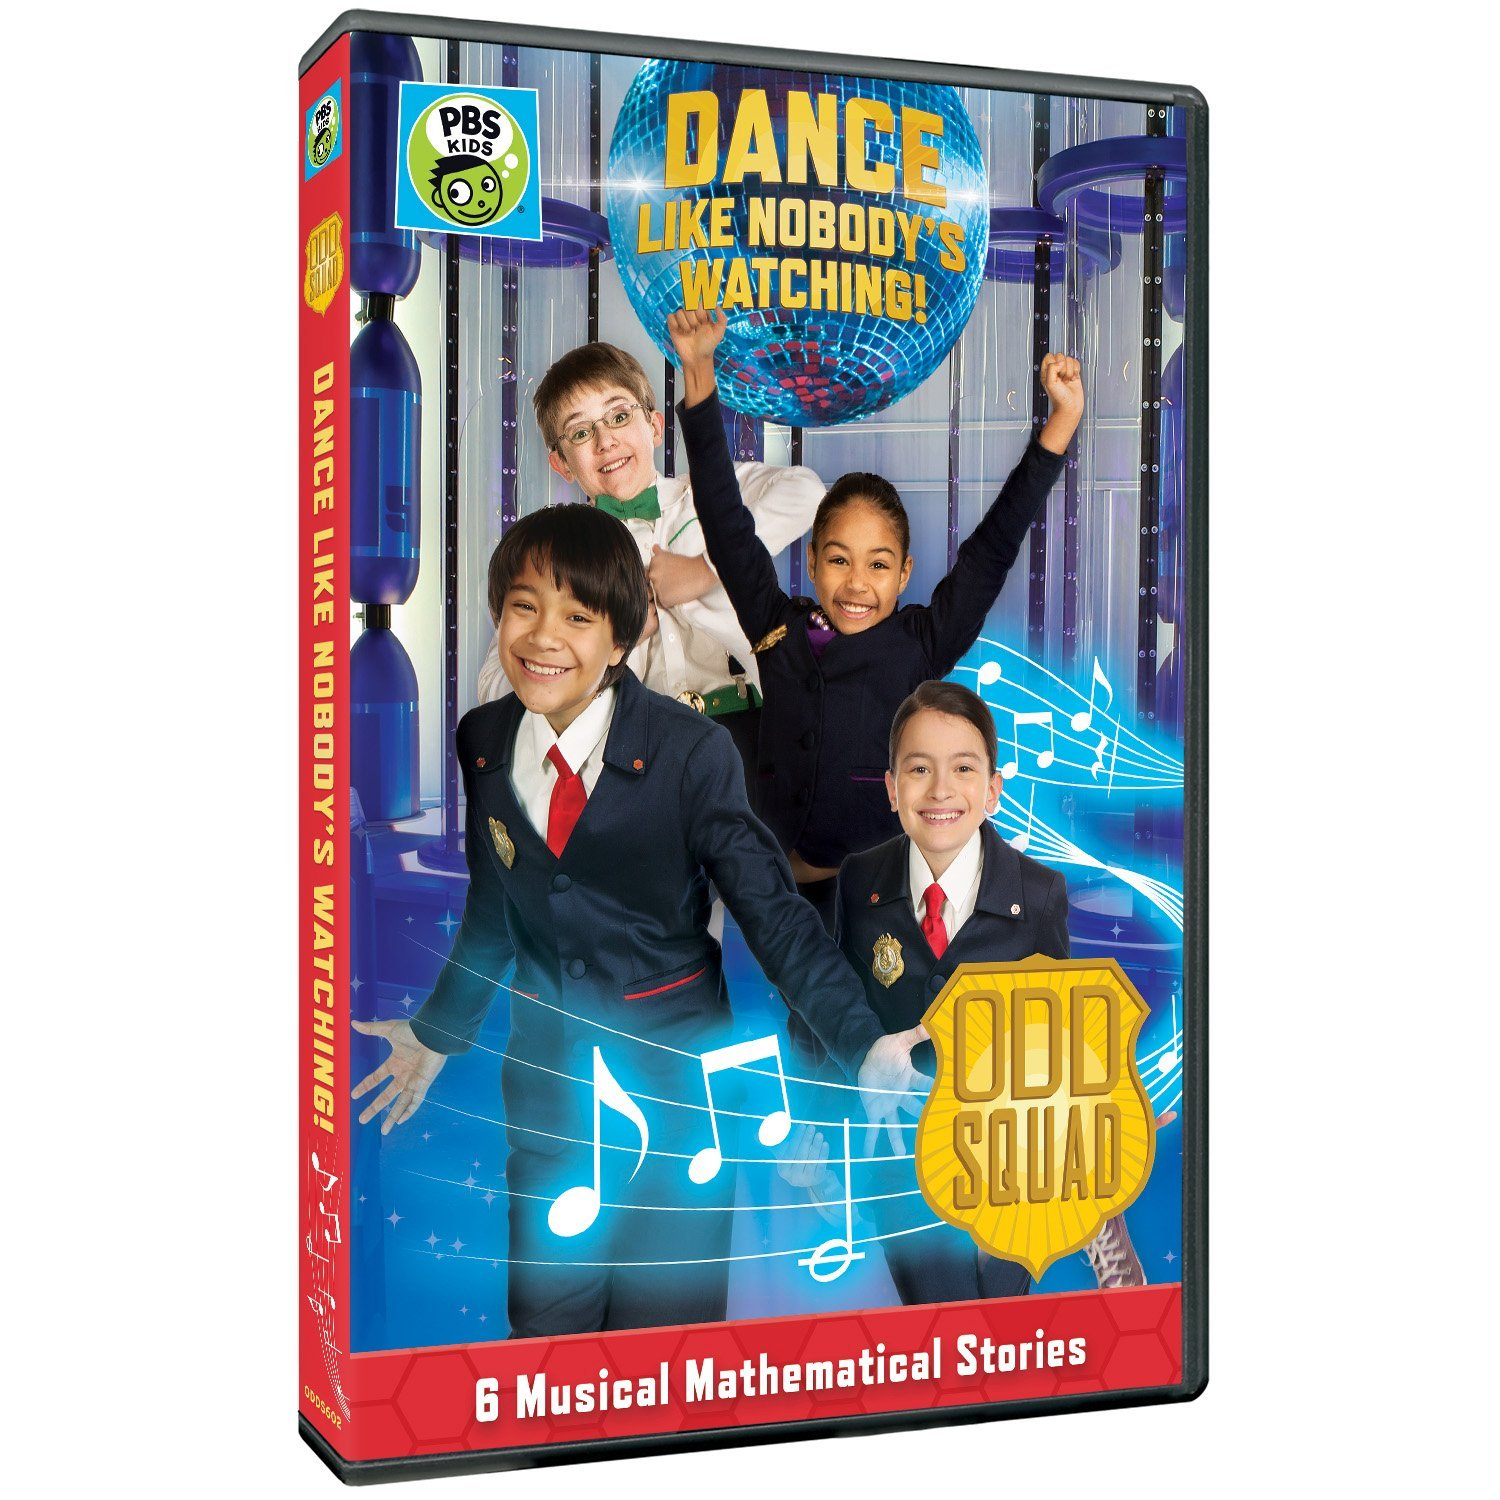 odd squad dance like nobody's watching